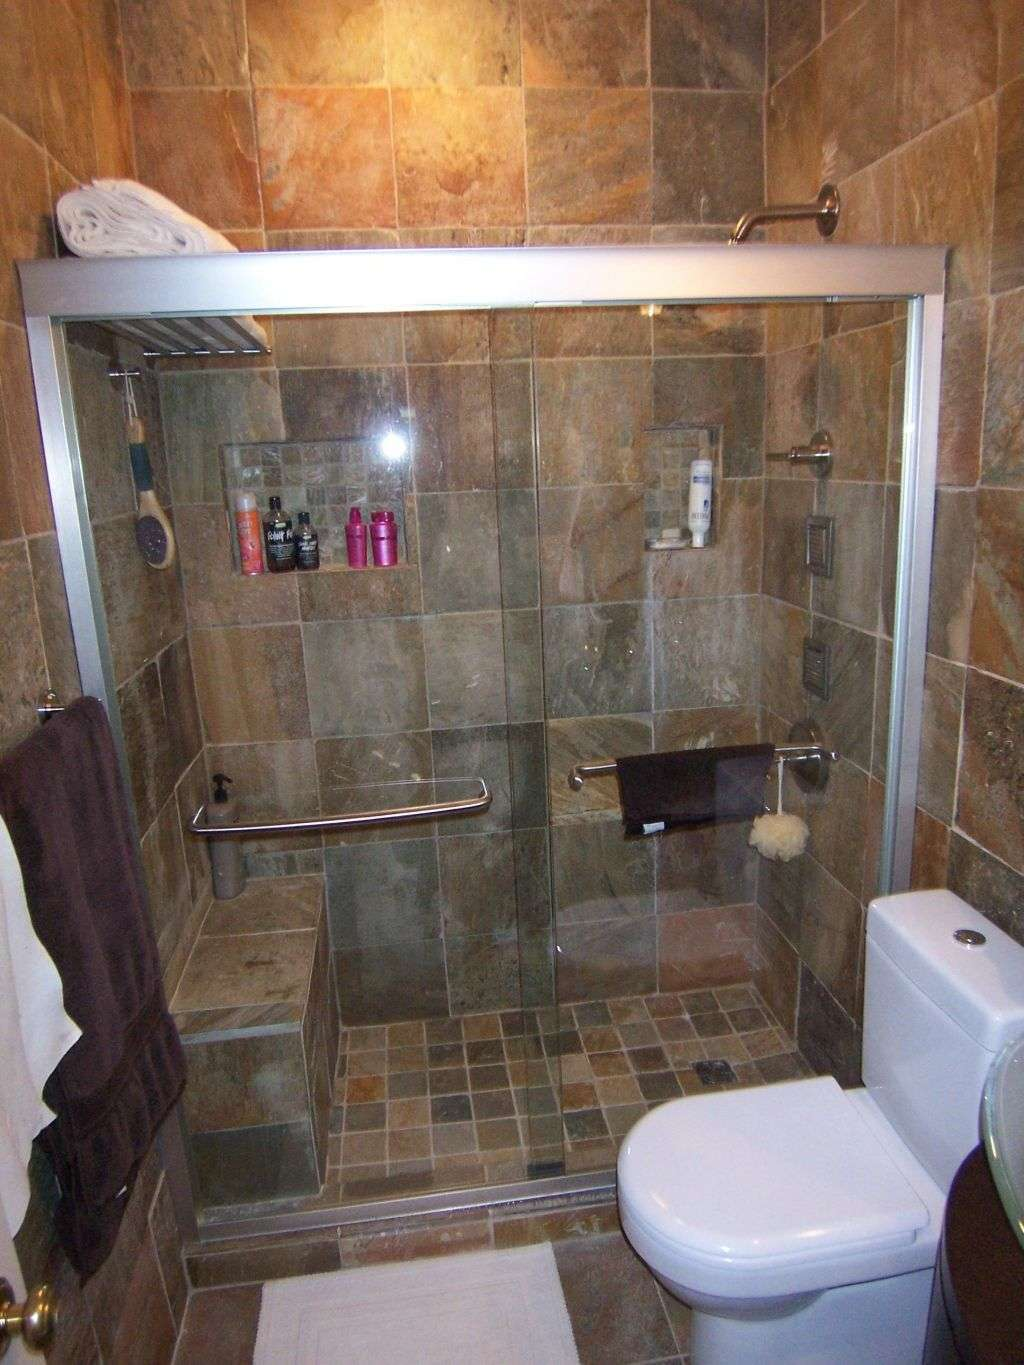 40 wonderful pictures and ideas of 1920s bathroom tile designs for Bathroom tile design ideas